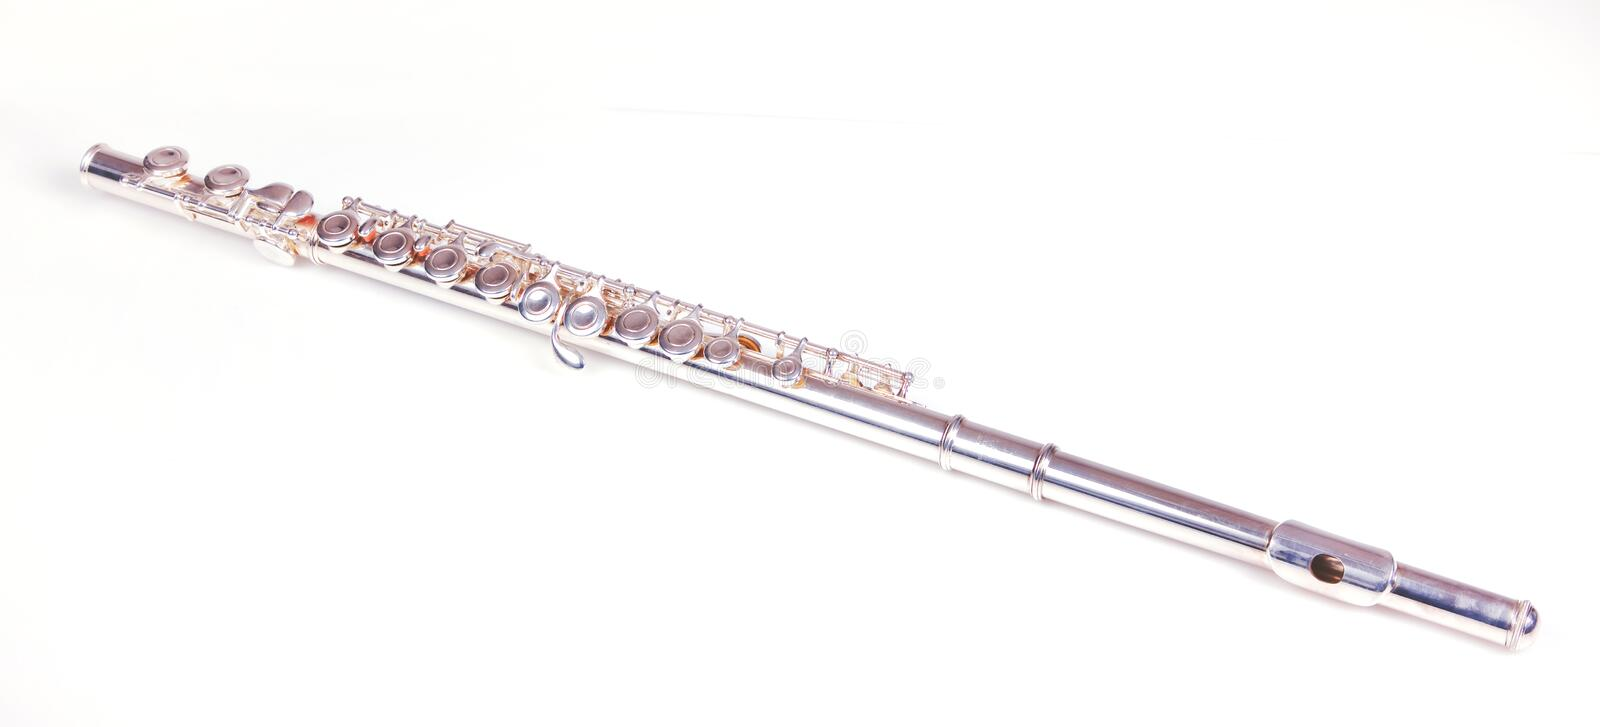 Flute stock images